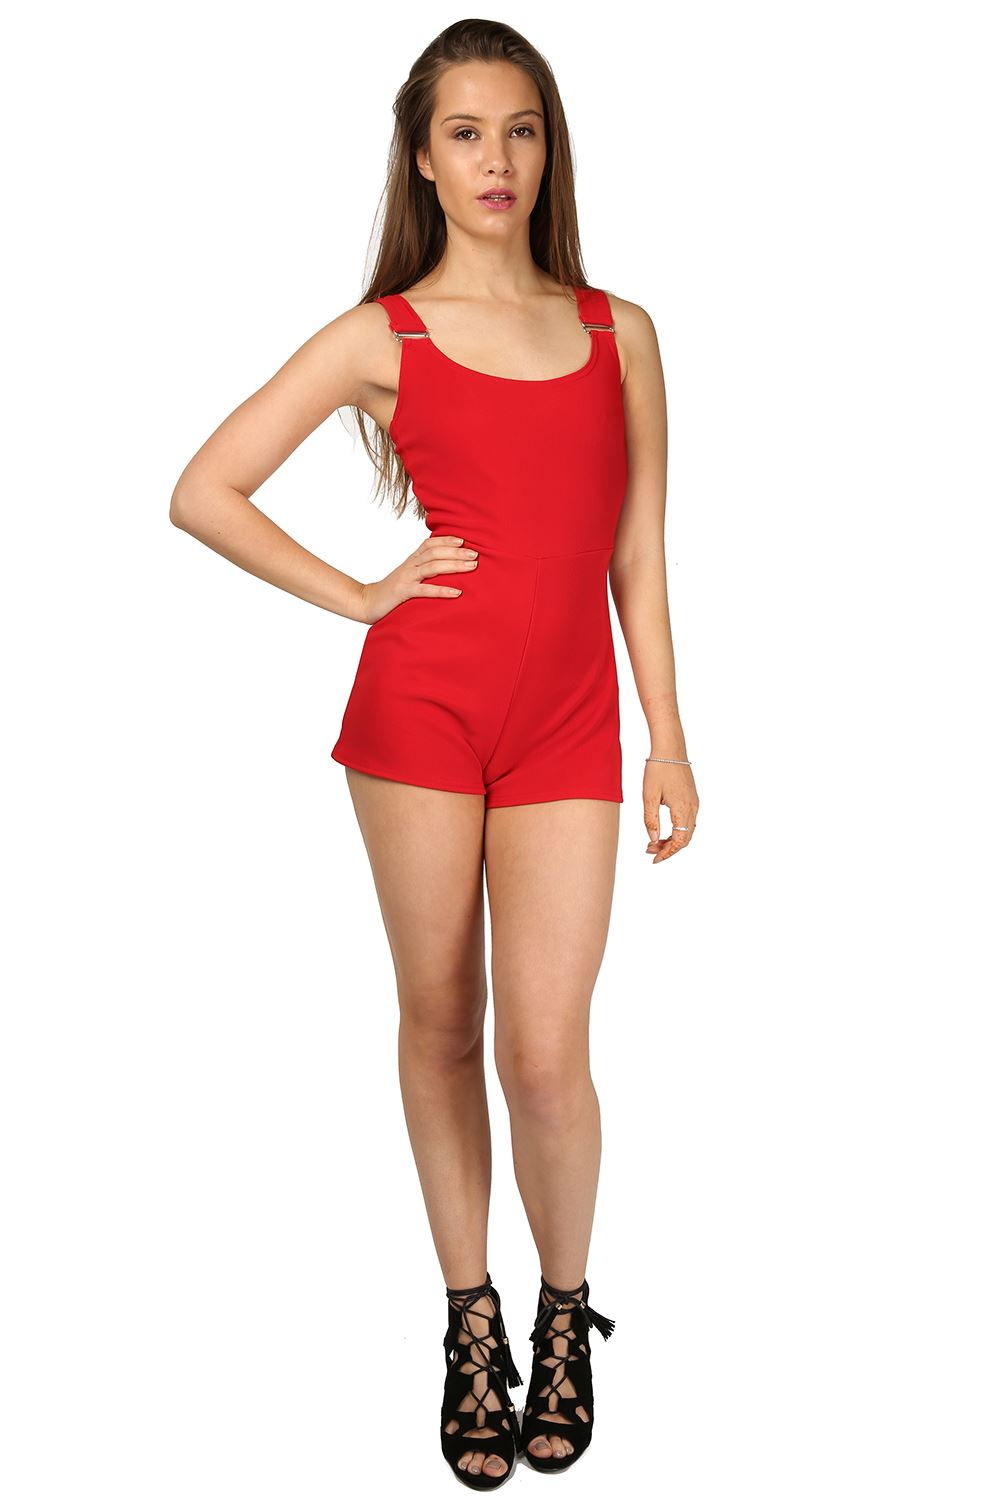 Shop for jumpsuits and rompers for women at dnxvvyut.ml Find a wide range of women's jumpsuit and romper styles from top brands. Free shipping and returns.